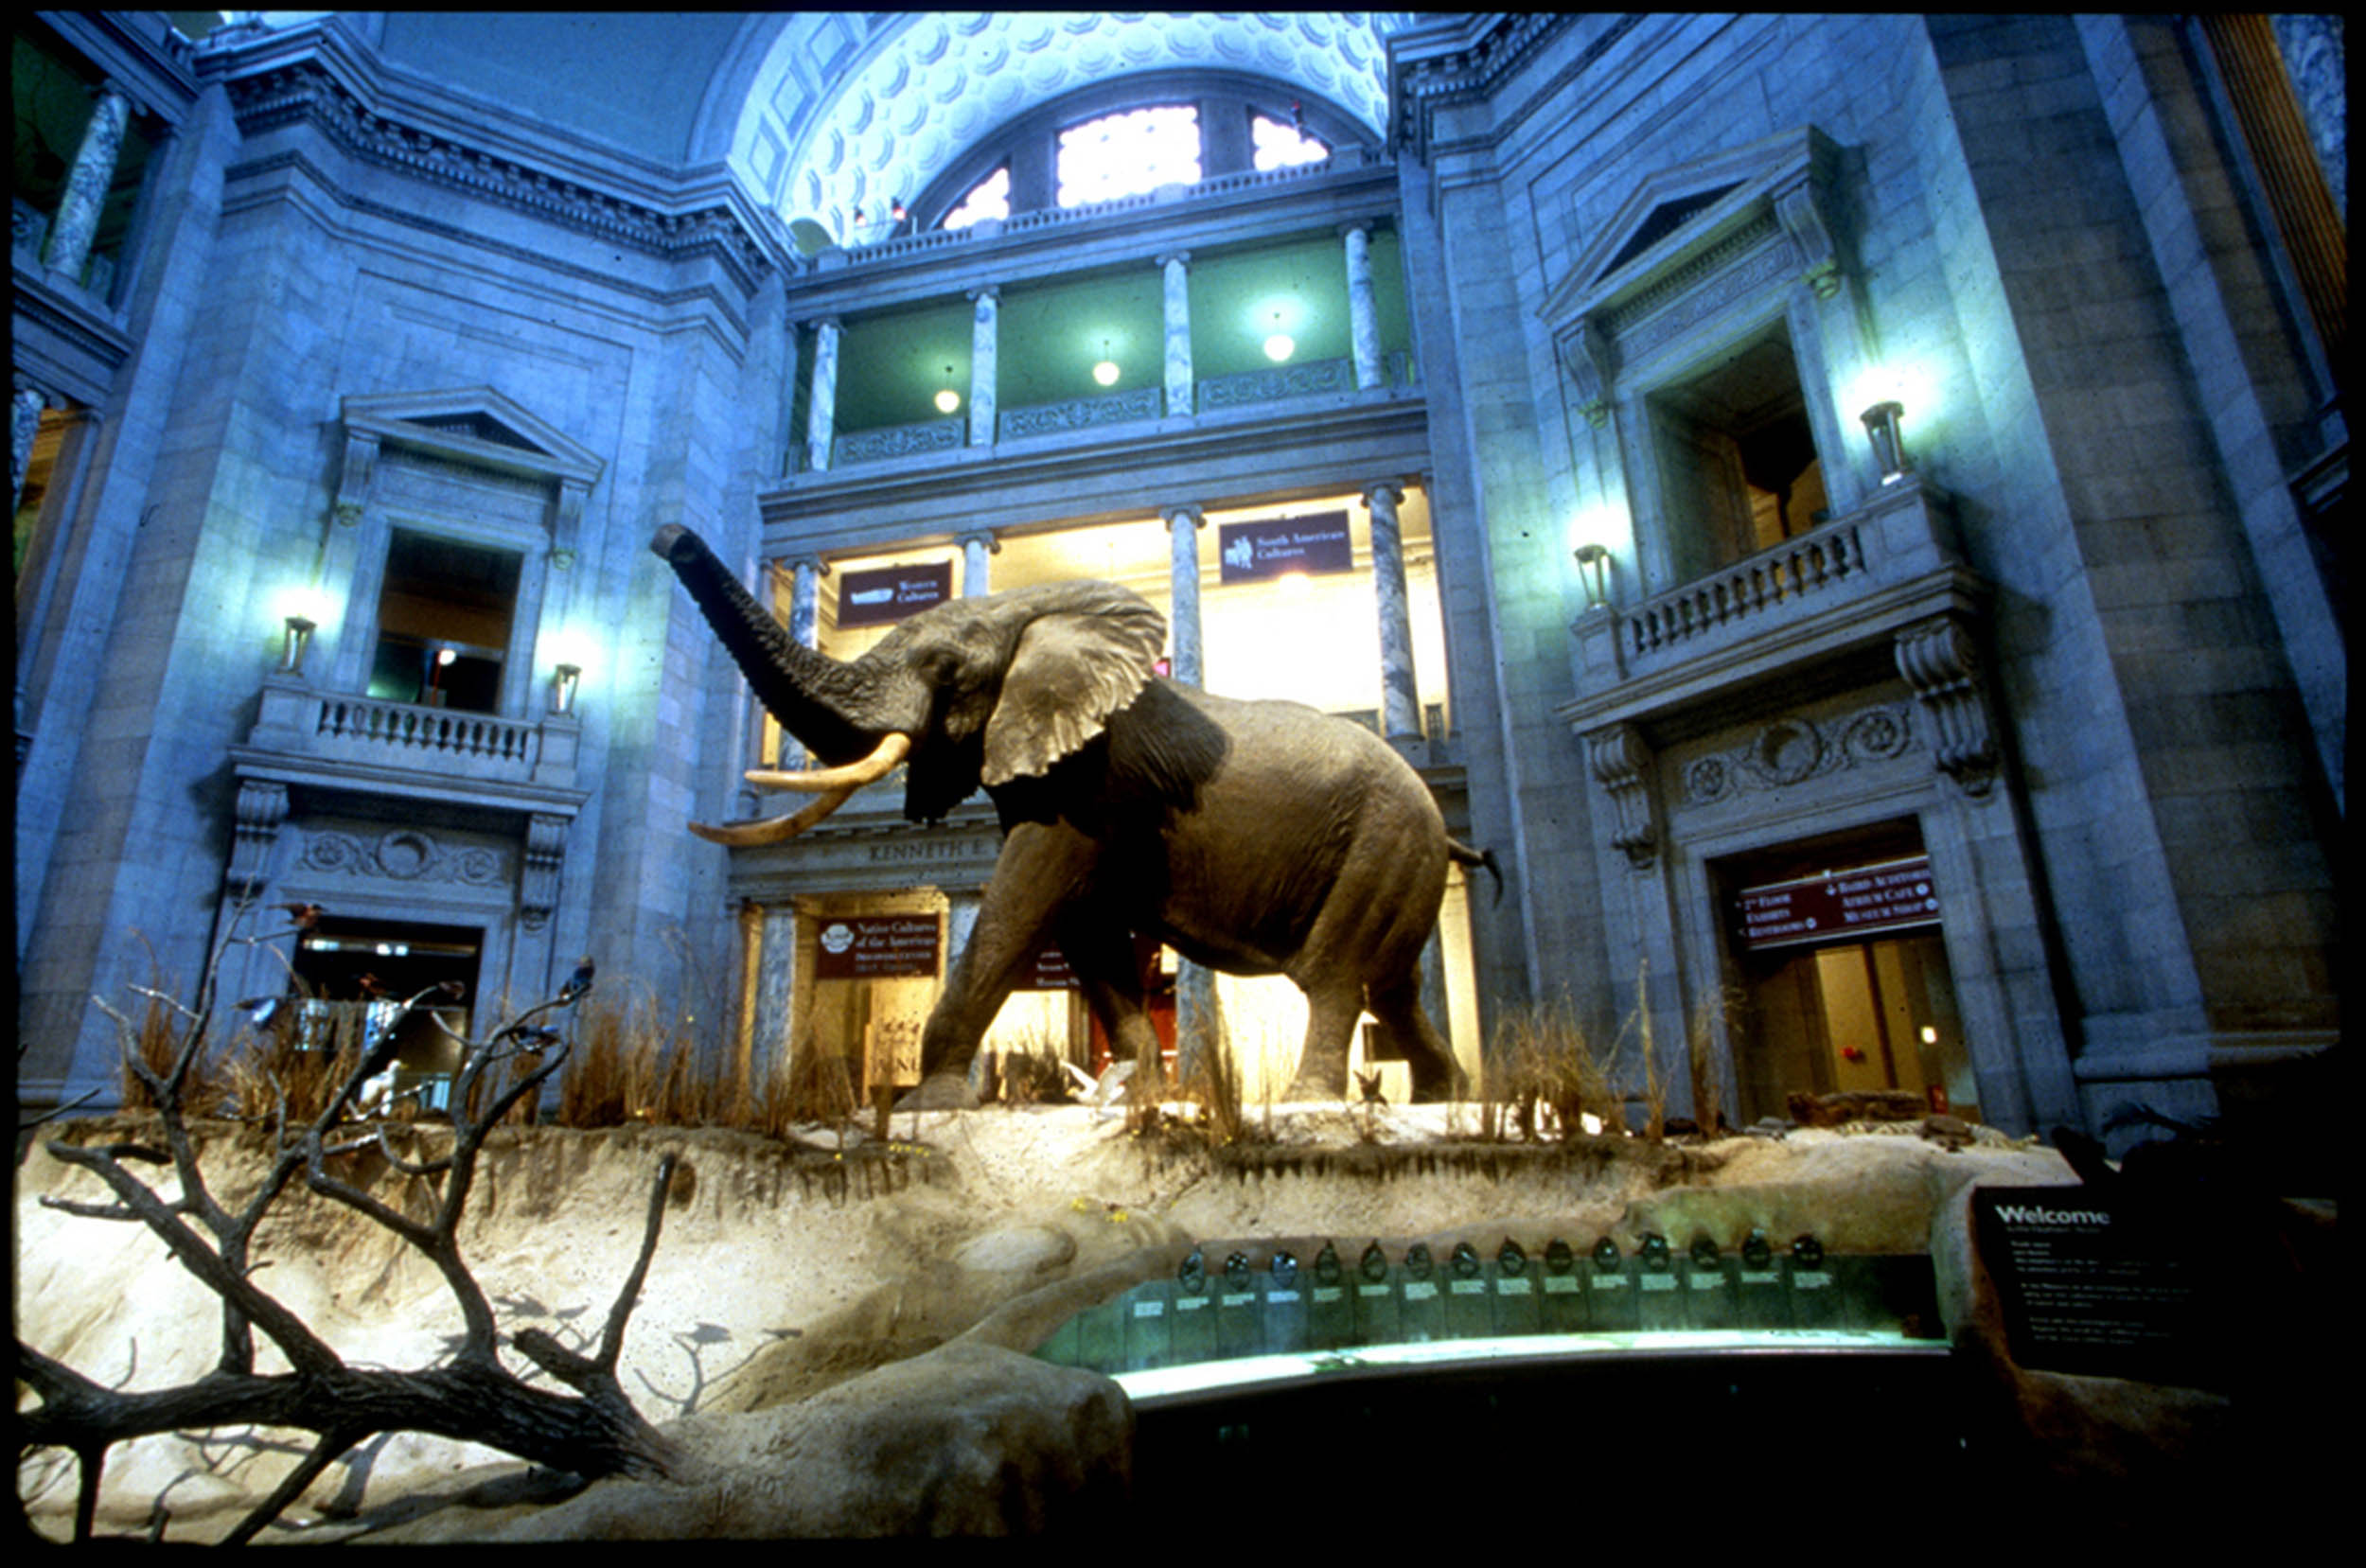 An African bull elephant greets visitors in the rotunda of the  National Museum of Natural History  in Washington D.C. / Image: Smithsonian